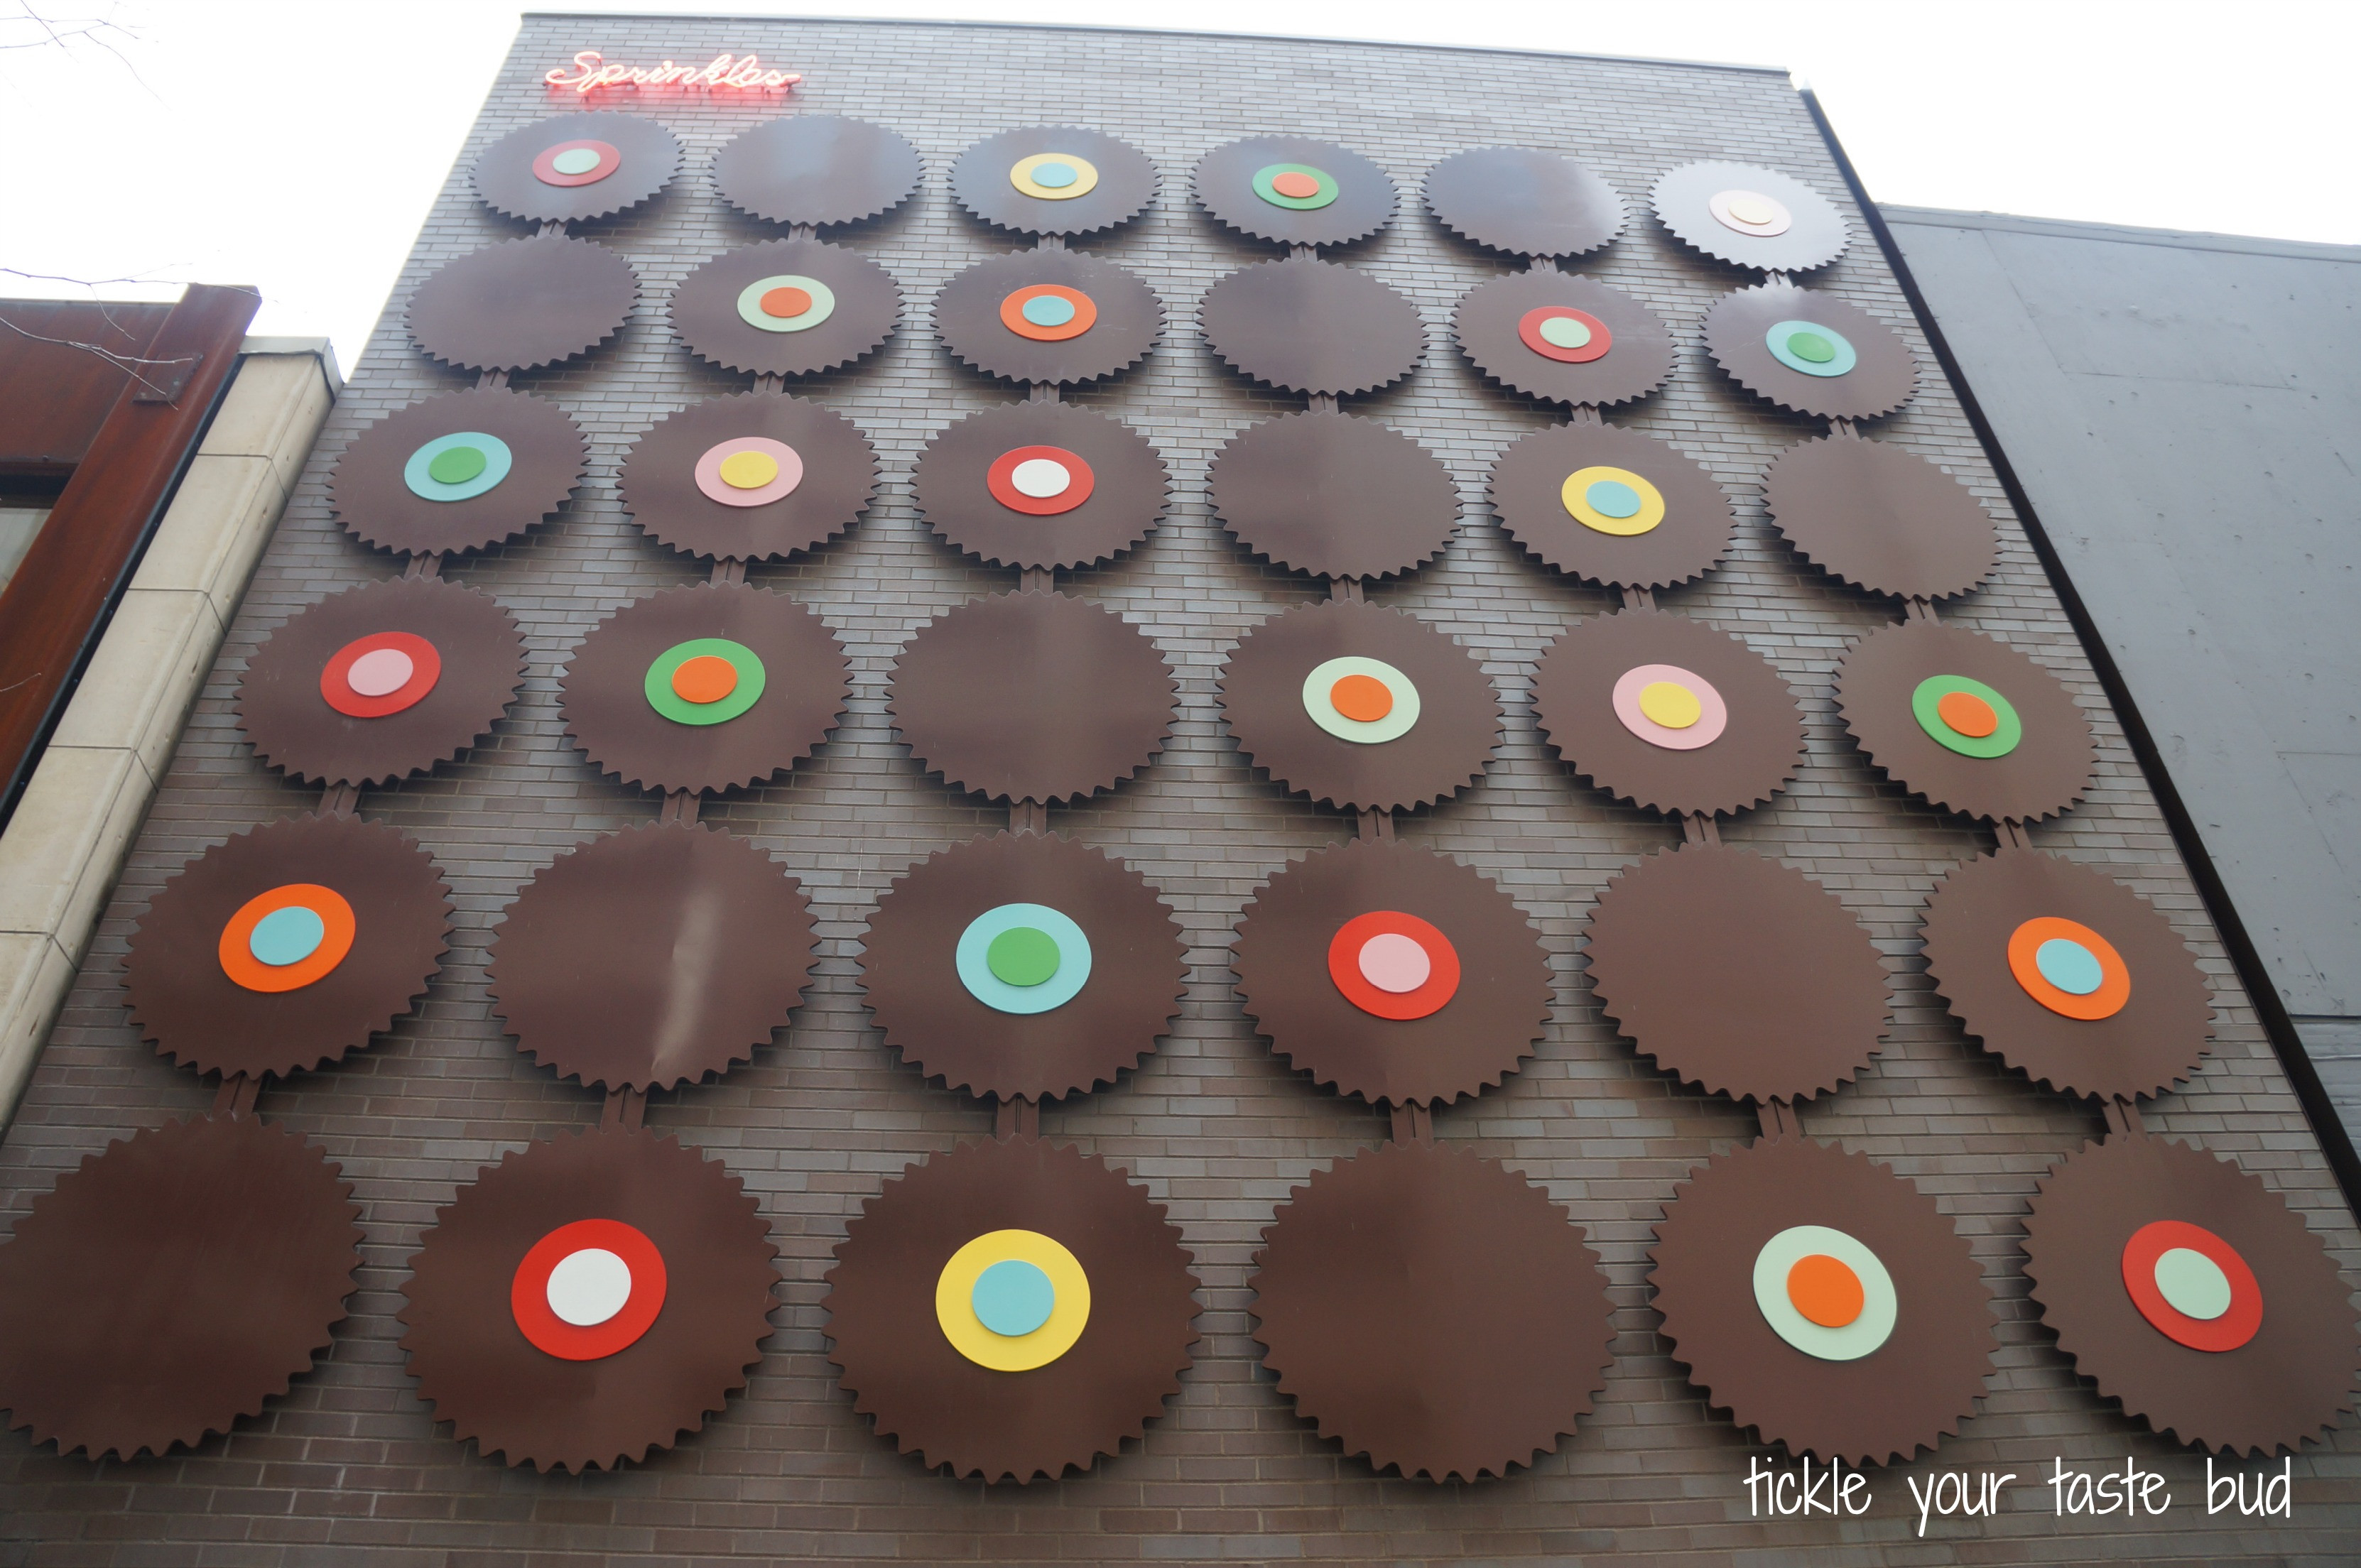 Sprinkles Cupcakes Chicago  Sprinkles Cupcakes Chicago The Funky BeansThe Funky Beans